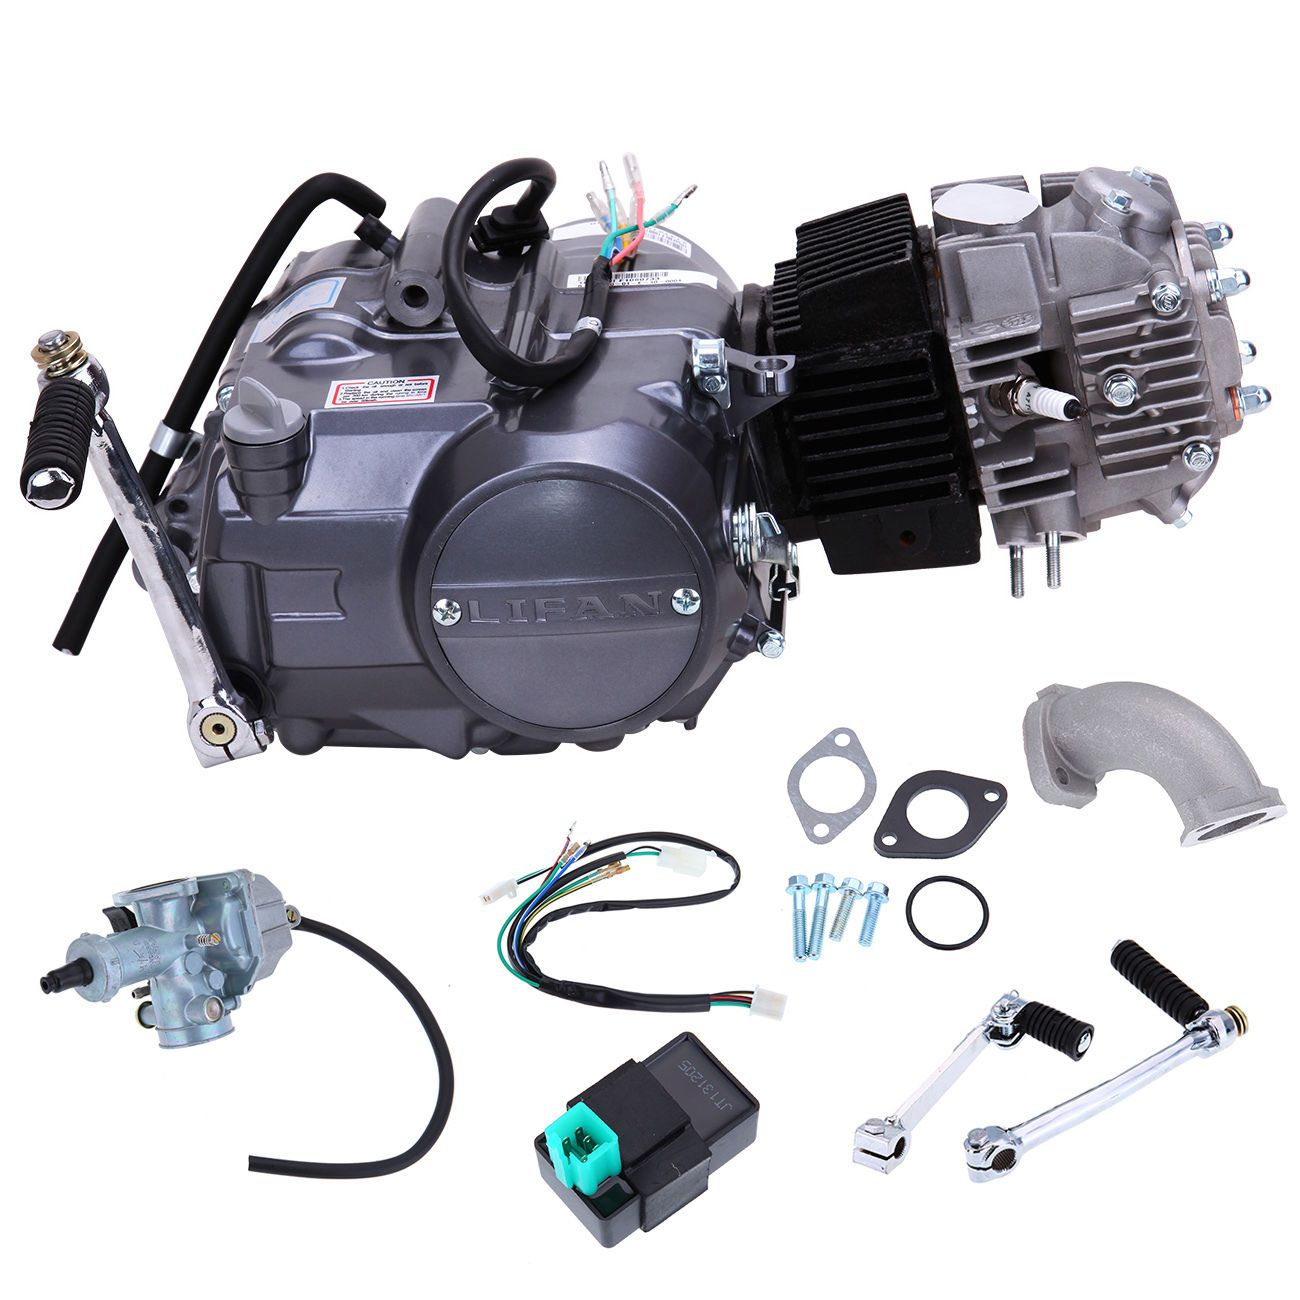 125cc 4 Stroke Single Cylinder Air Cooled Engine Motor For Honda Crf 50 70 Xr50 In Ebay Motors Parts Acc Engineering Motorcycle Design Bobber Motorcycle Diy